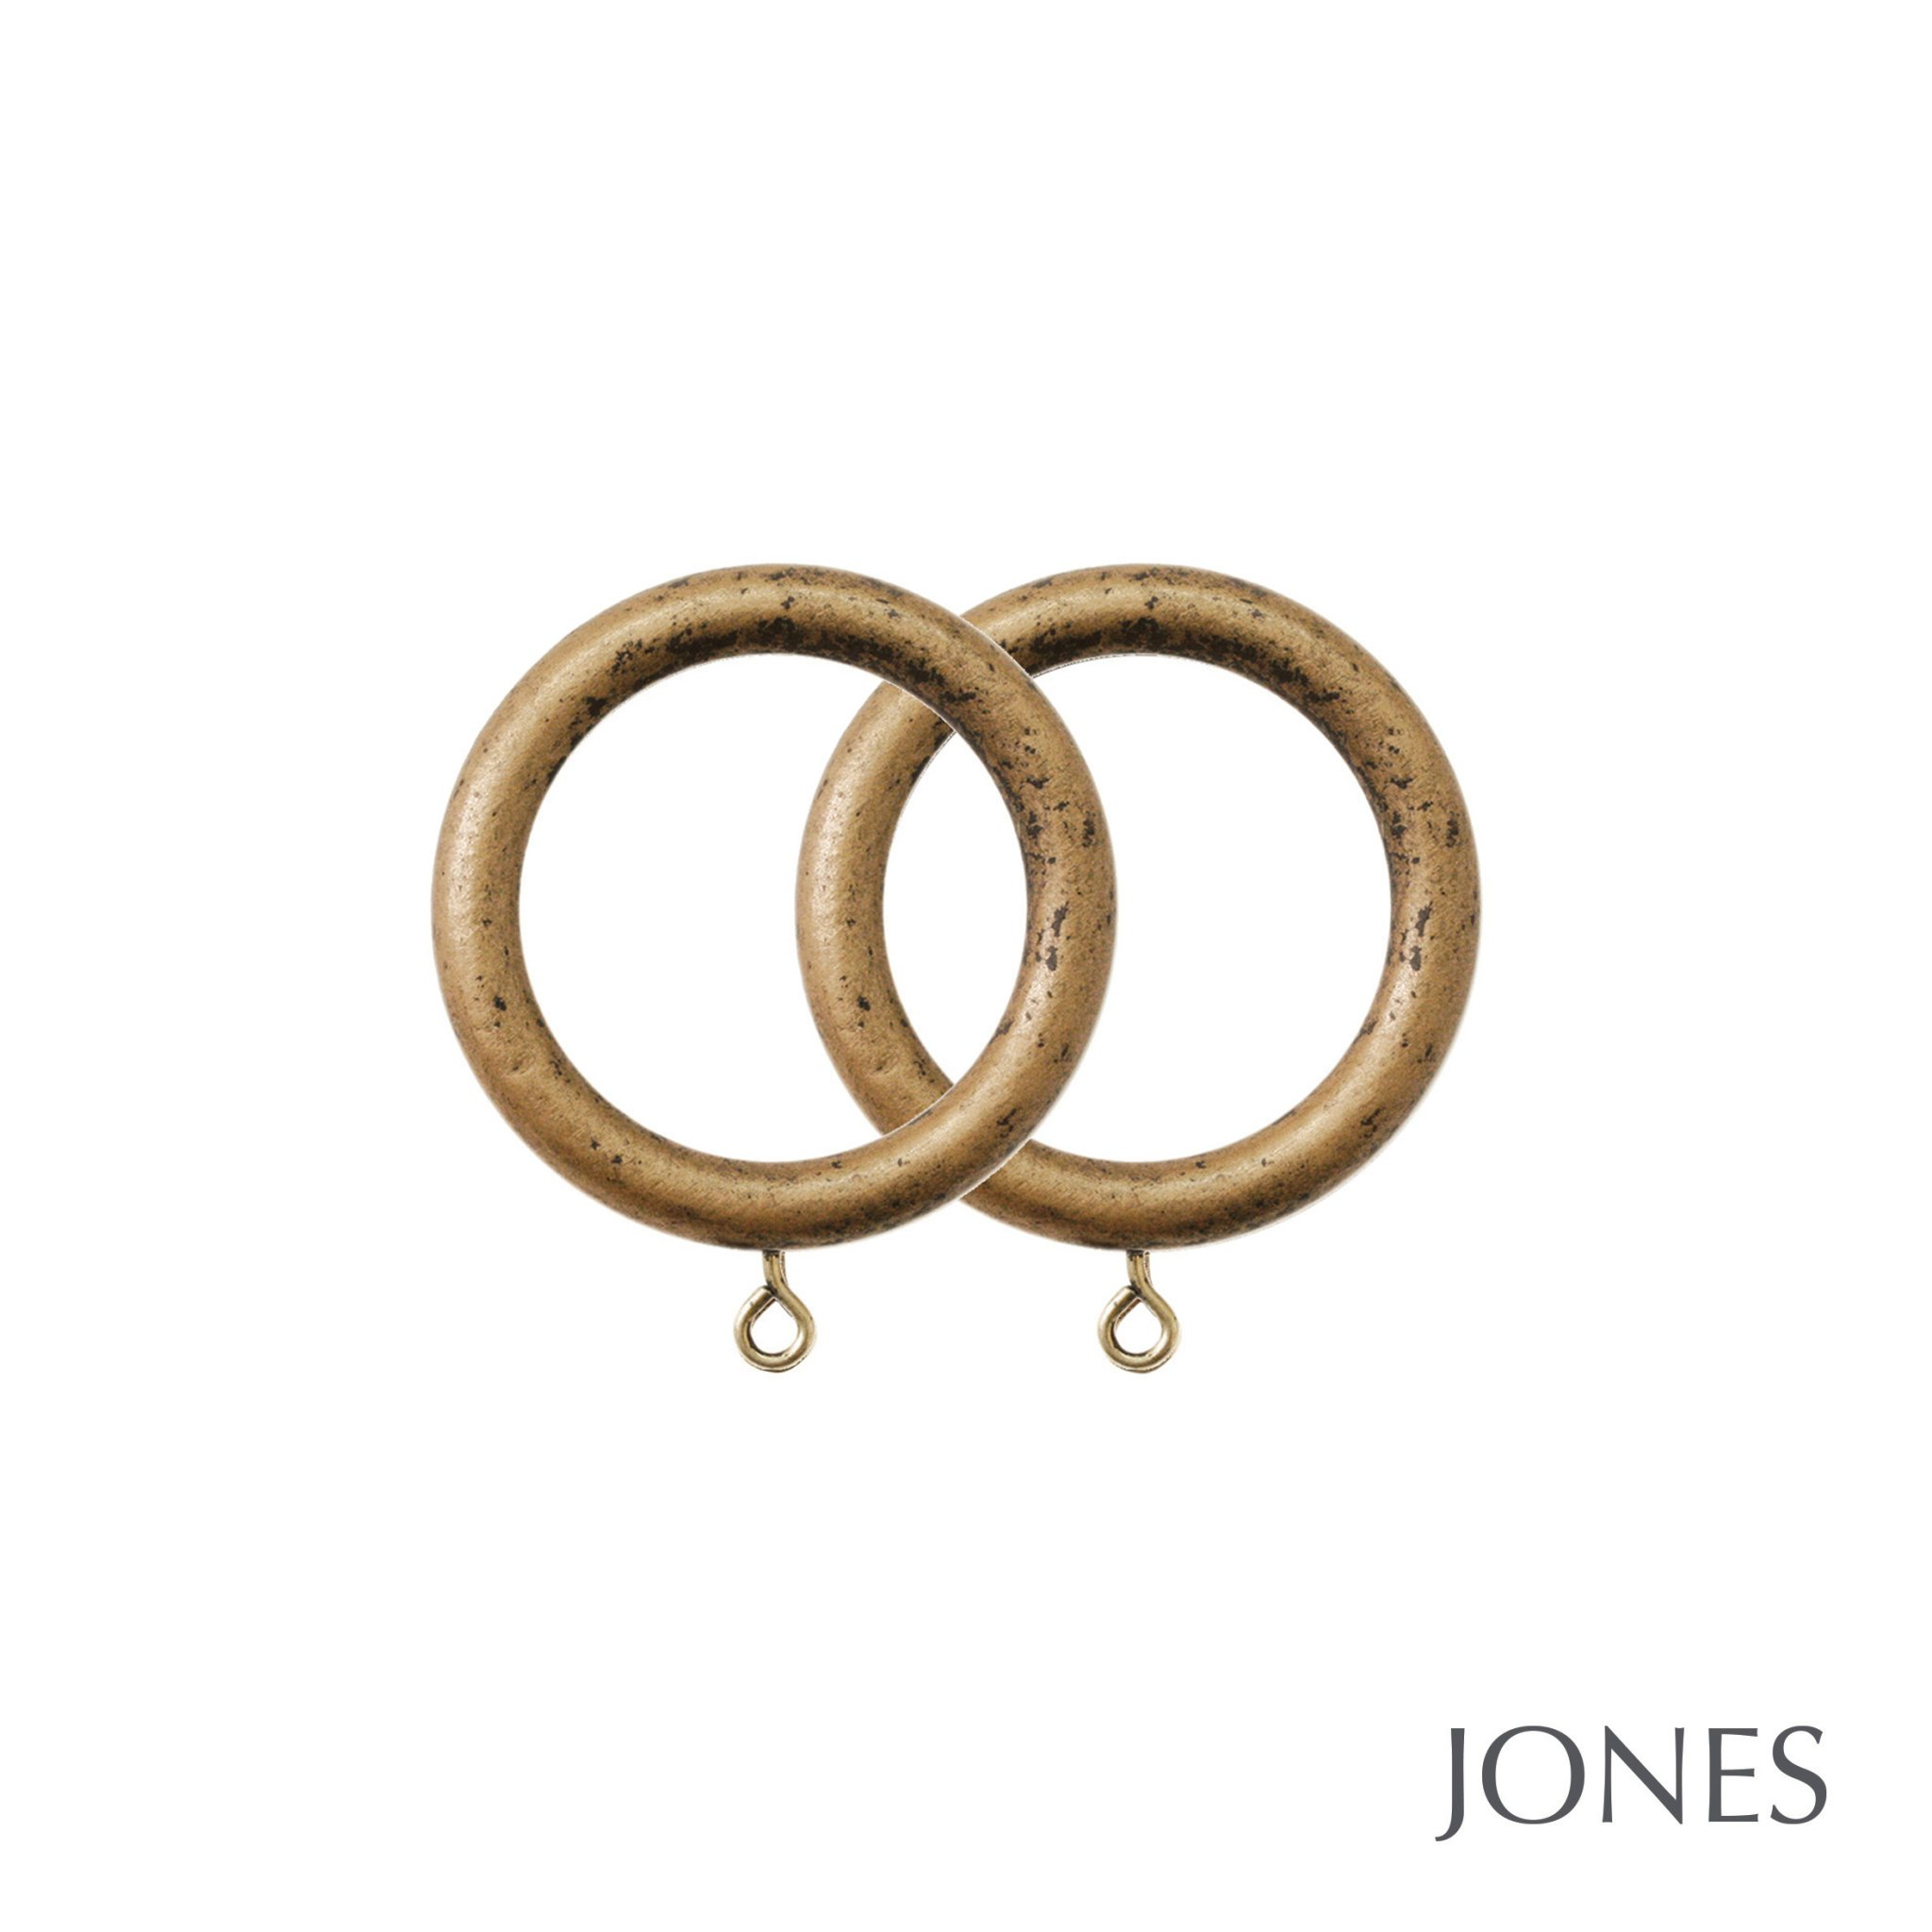 Jones Florentine Handcrafted 50mm Curtain Rings